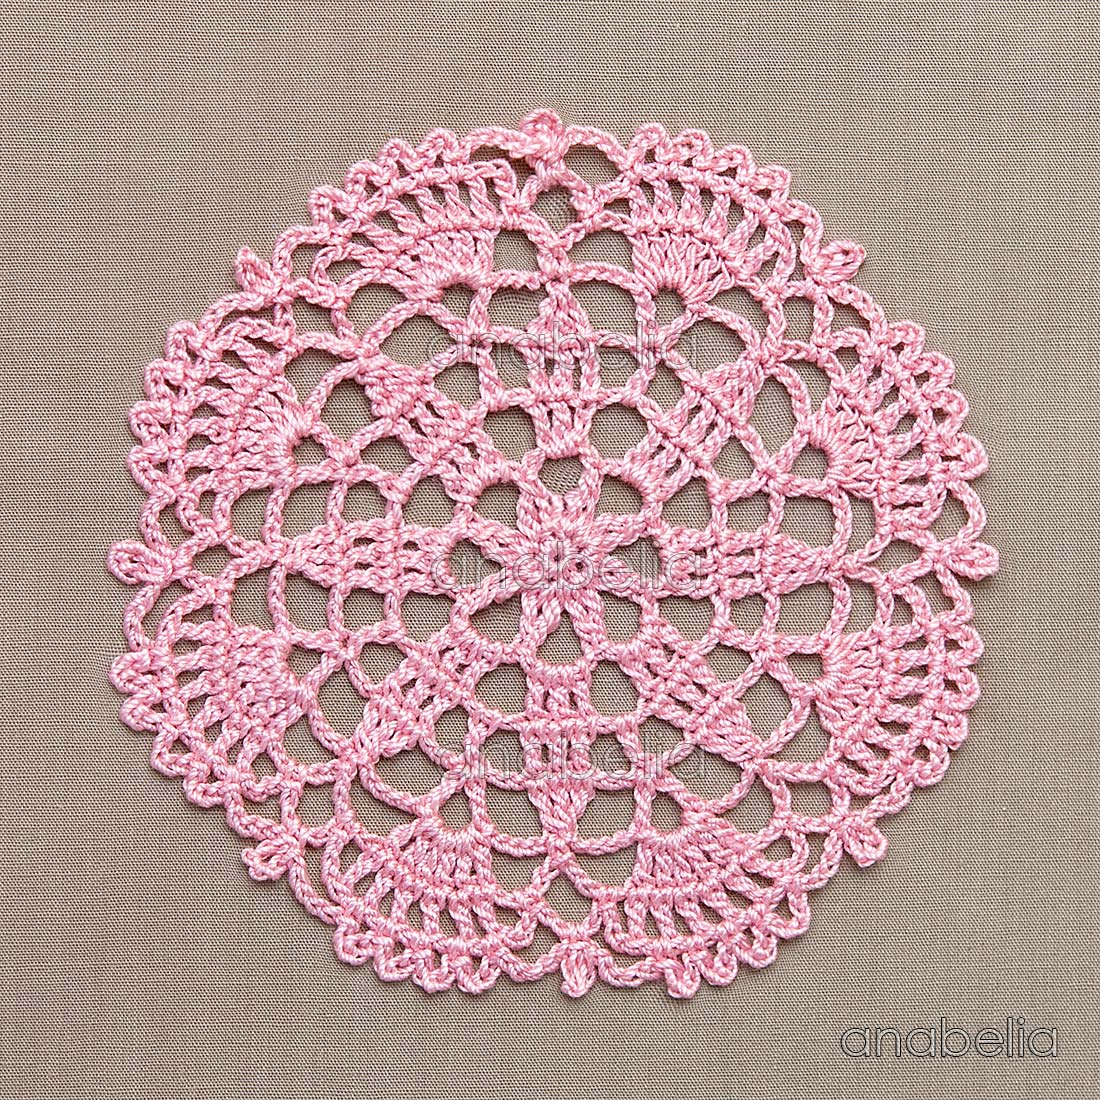 Crochet lace motifs in pink and white, free patterns   Anabelia ...